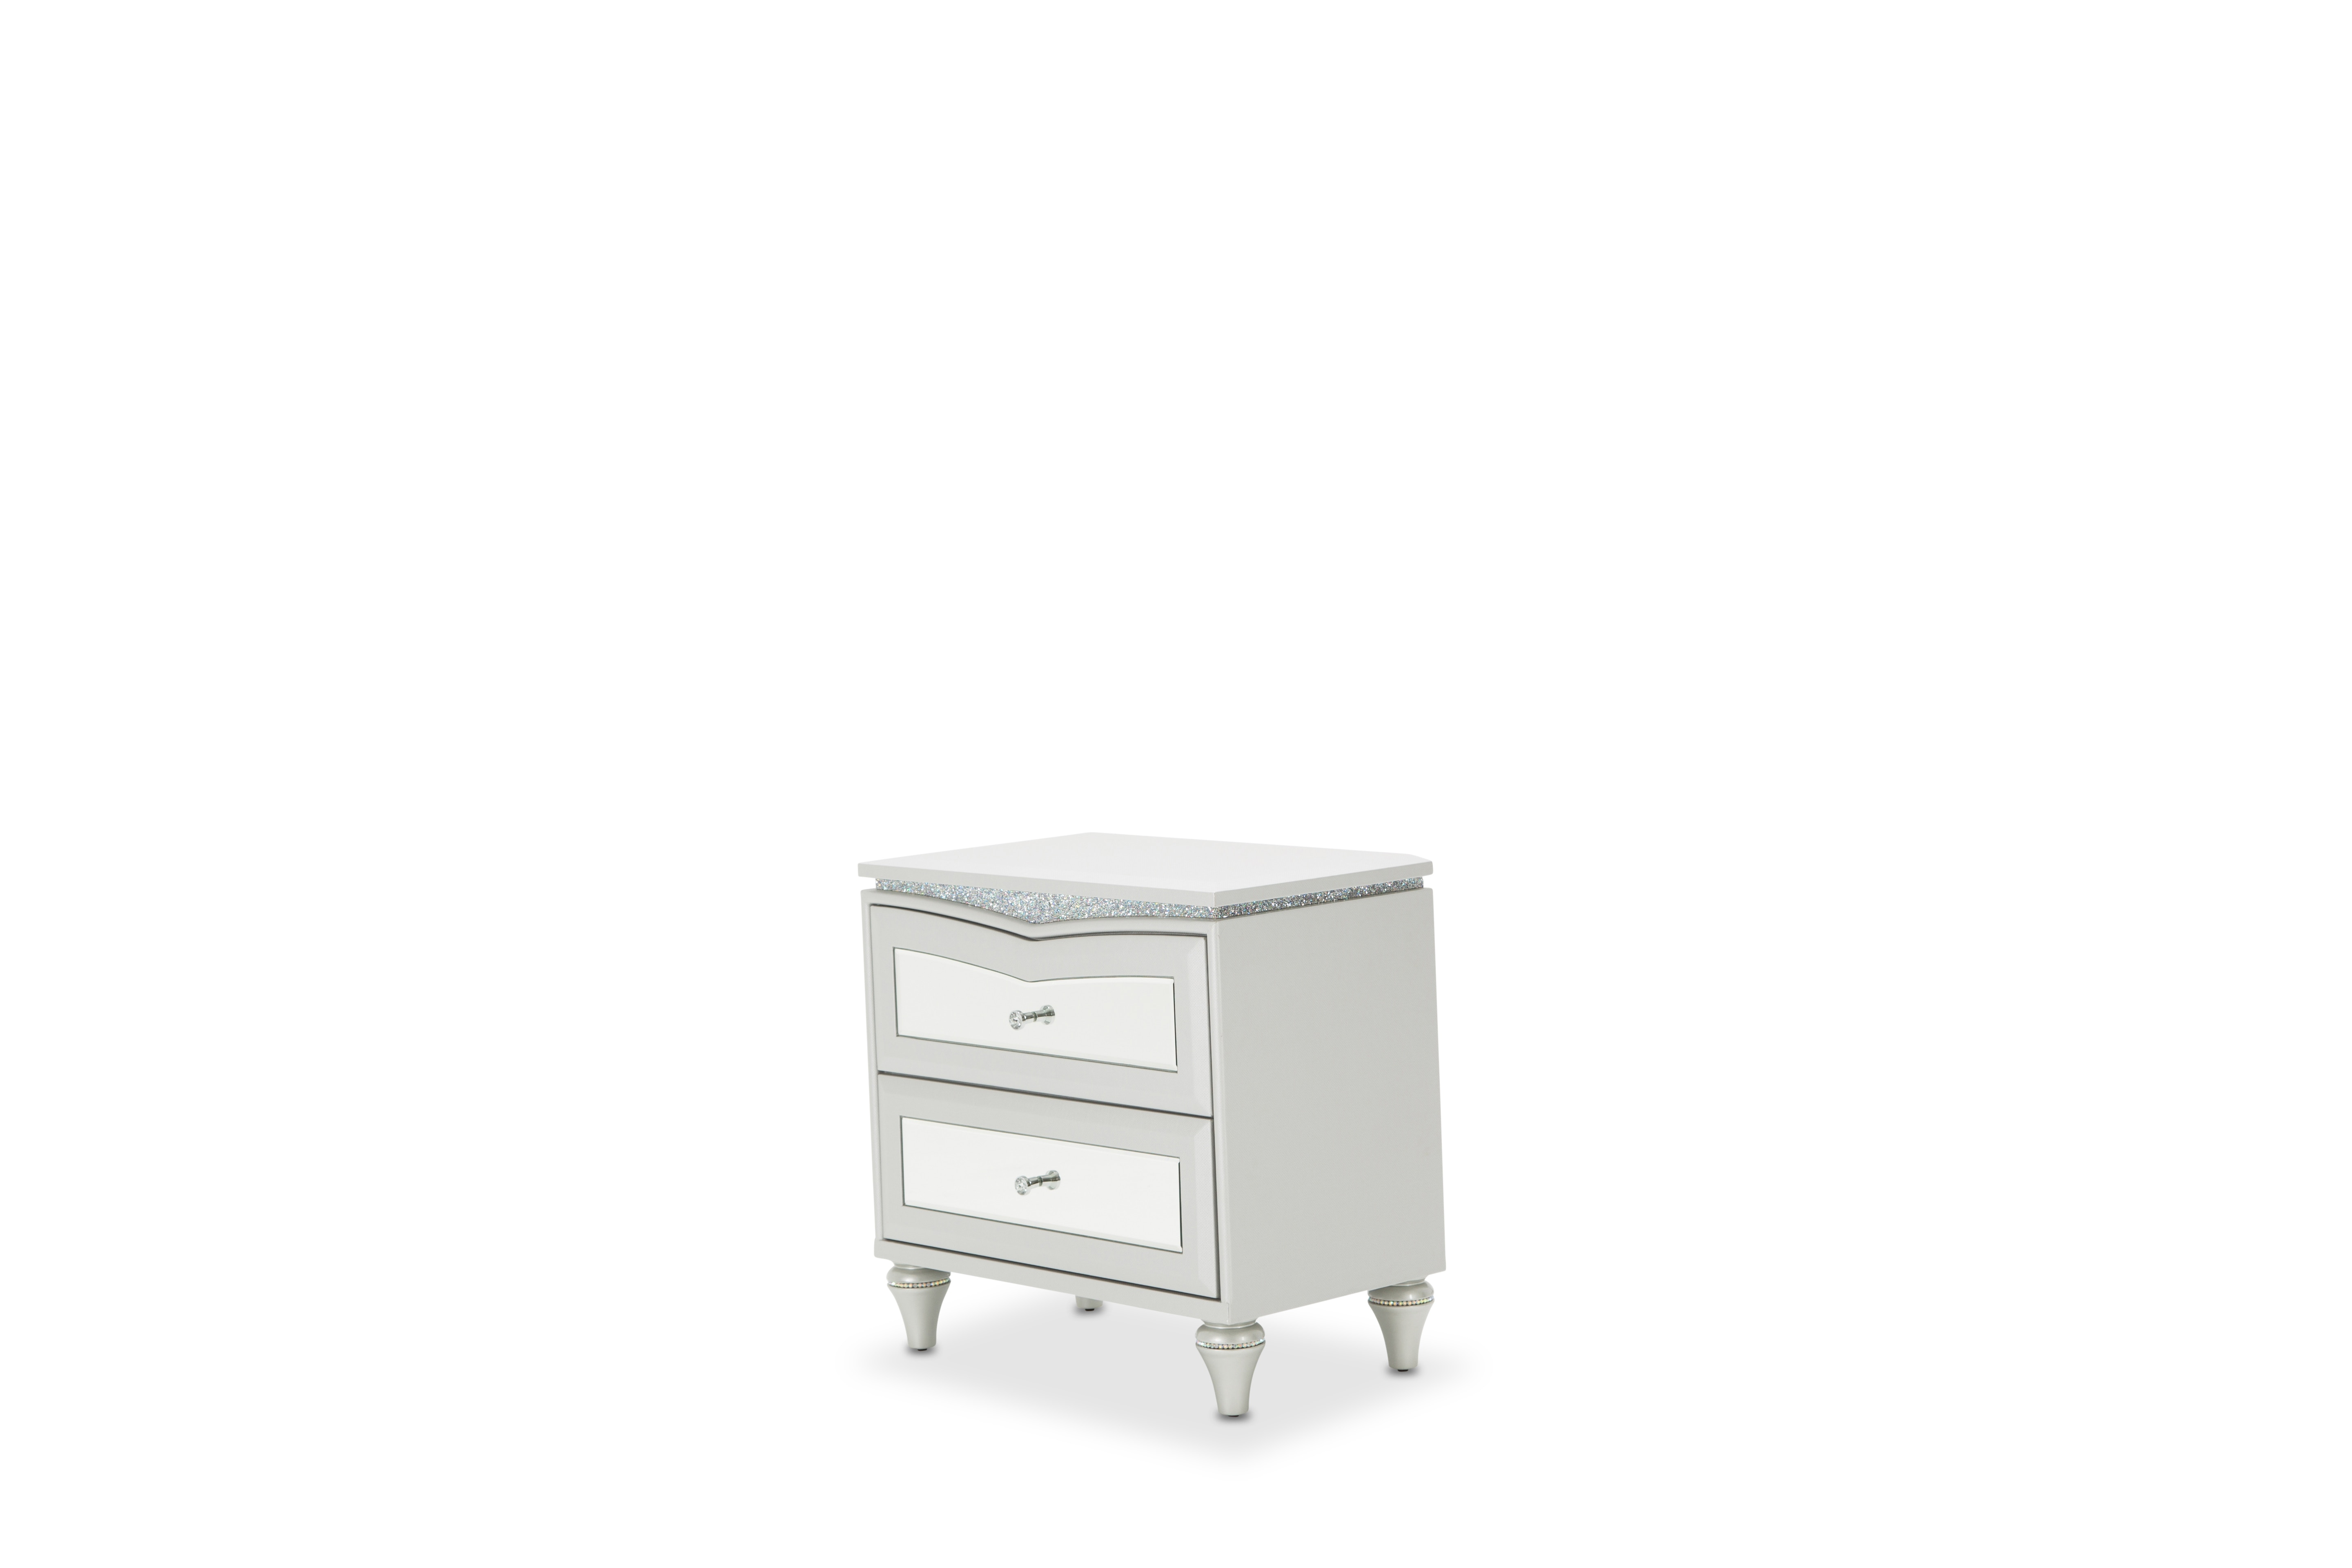 Good Melrose Furniture #18 - Aico Furniture Melrose Plaza Upholstered Nightstand 9019040-118